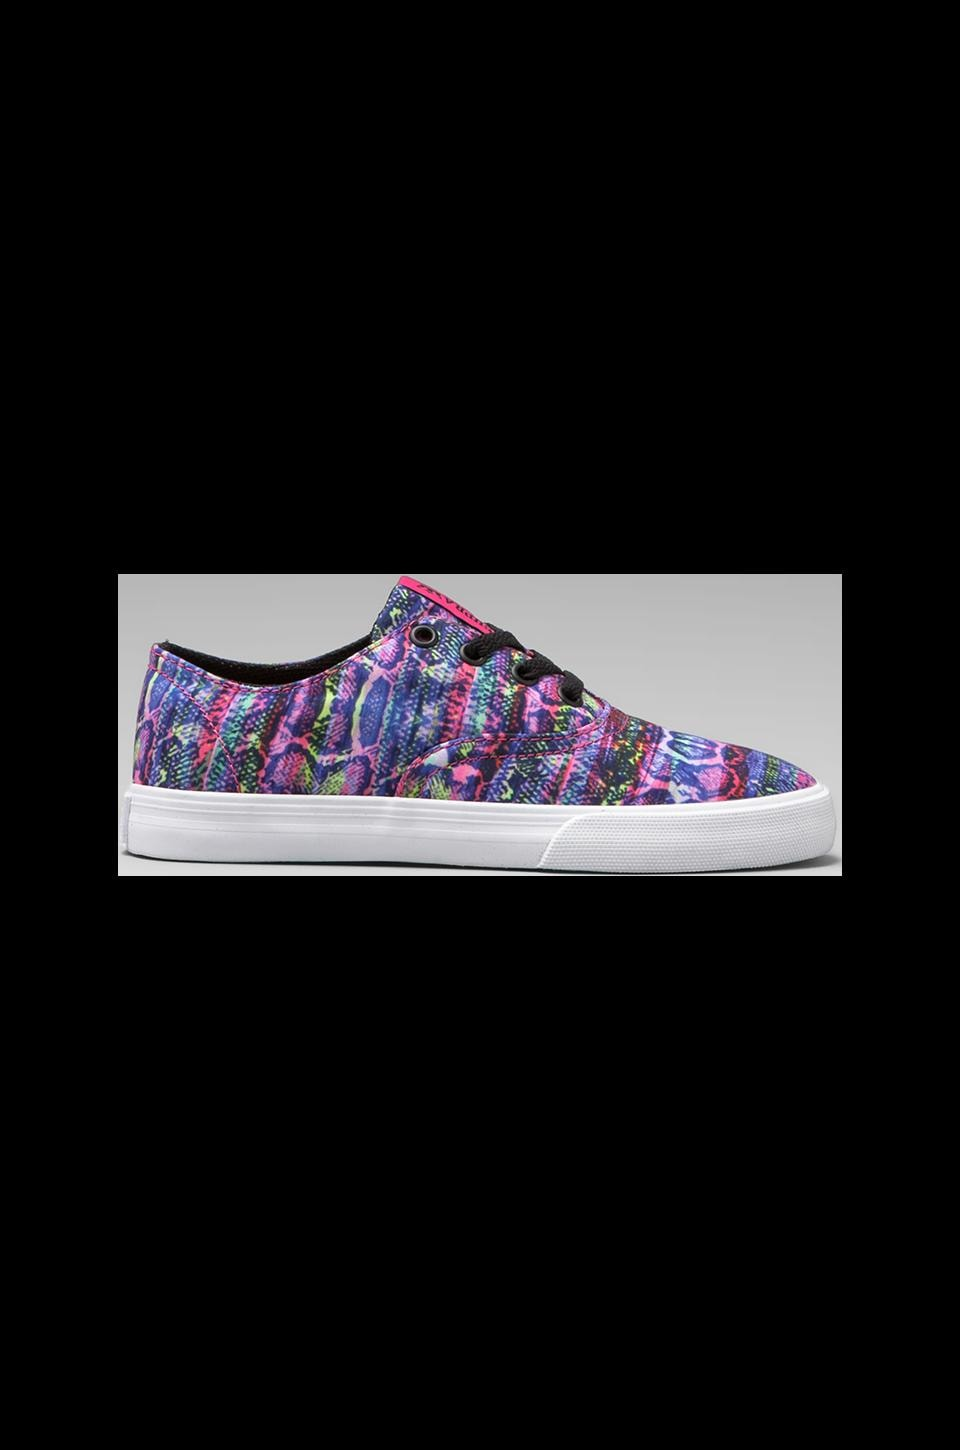 Supra Wrap Sneaker in Multi